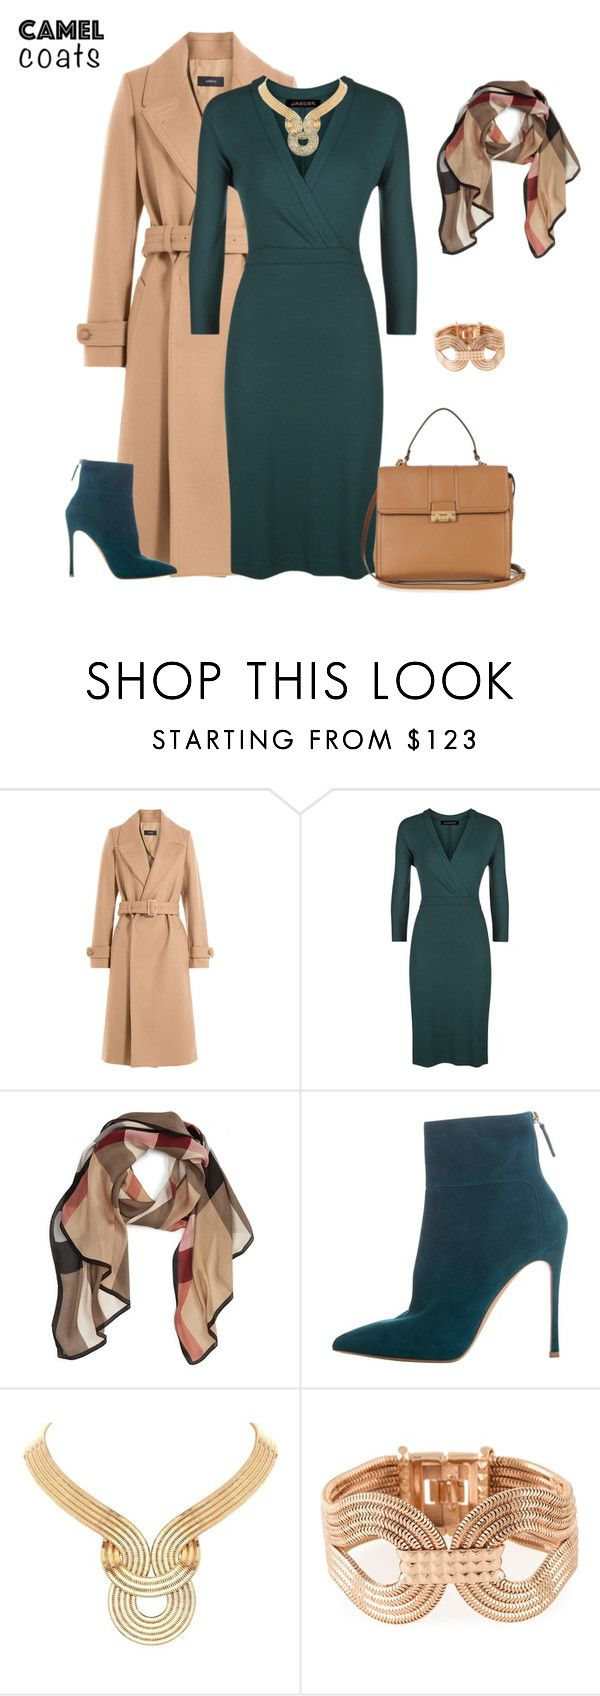 outfit 4897 by natalyag on Polyvore featuring Jaeger, Joseph, Gianvito Rossi, Lanvin, Lara Bohinc and Burberry